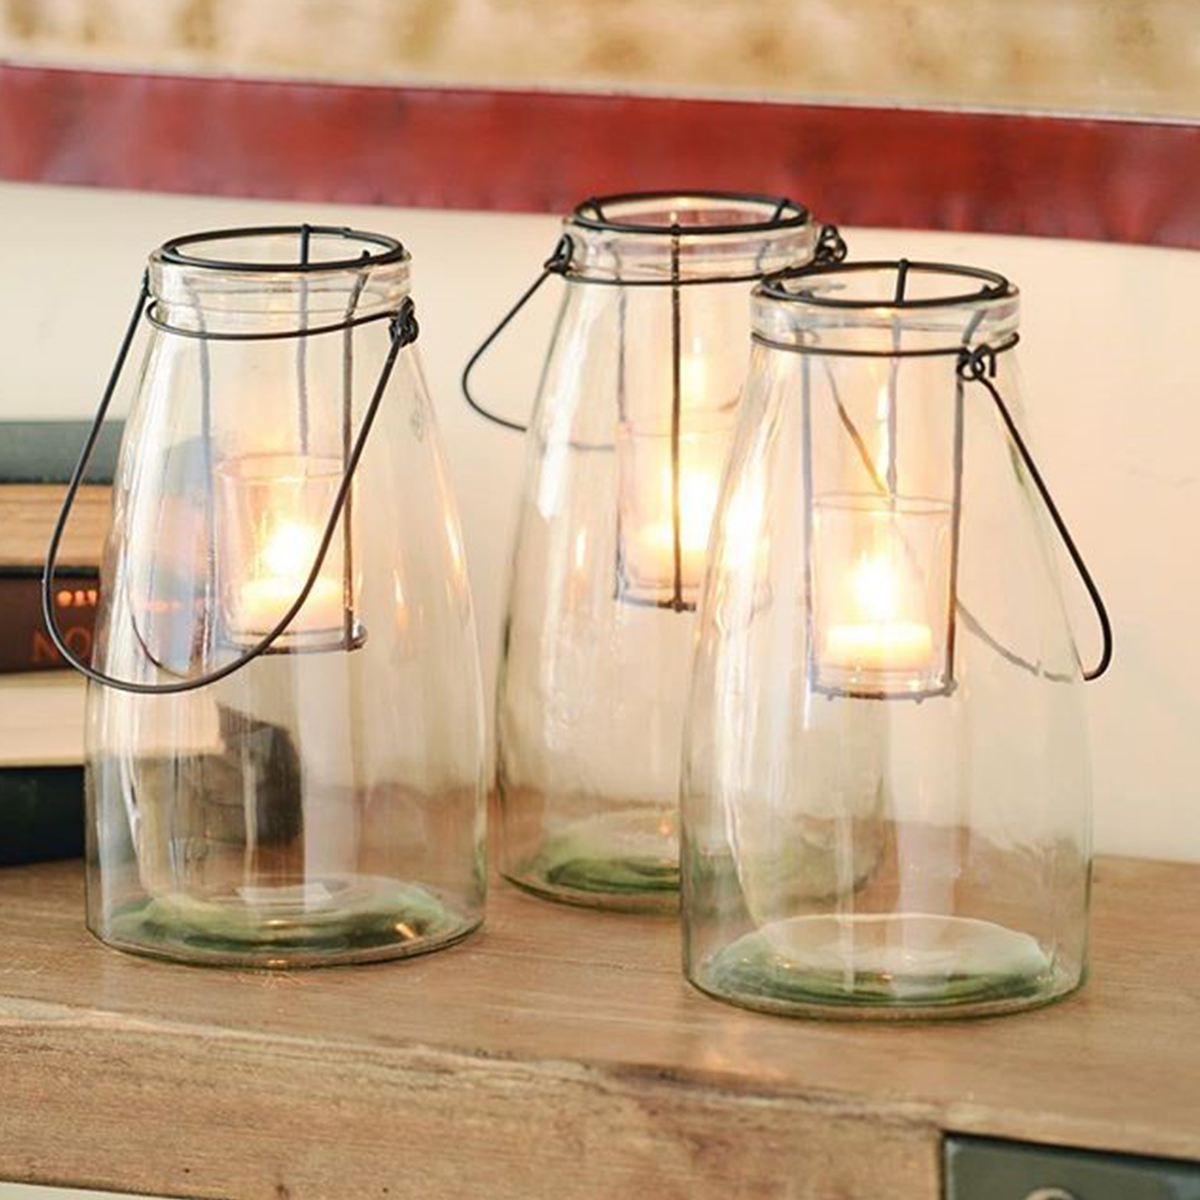 Rustic glass lanterns for tealights or votive candles. photo